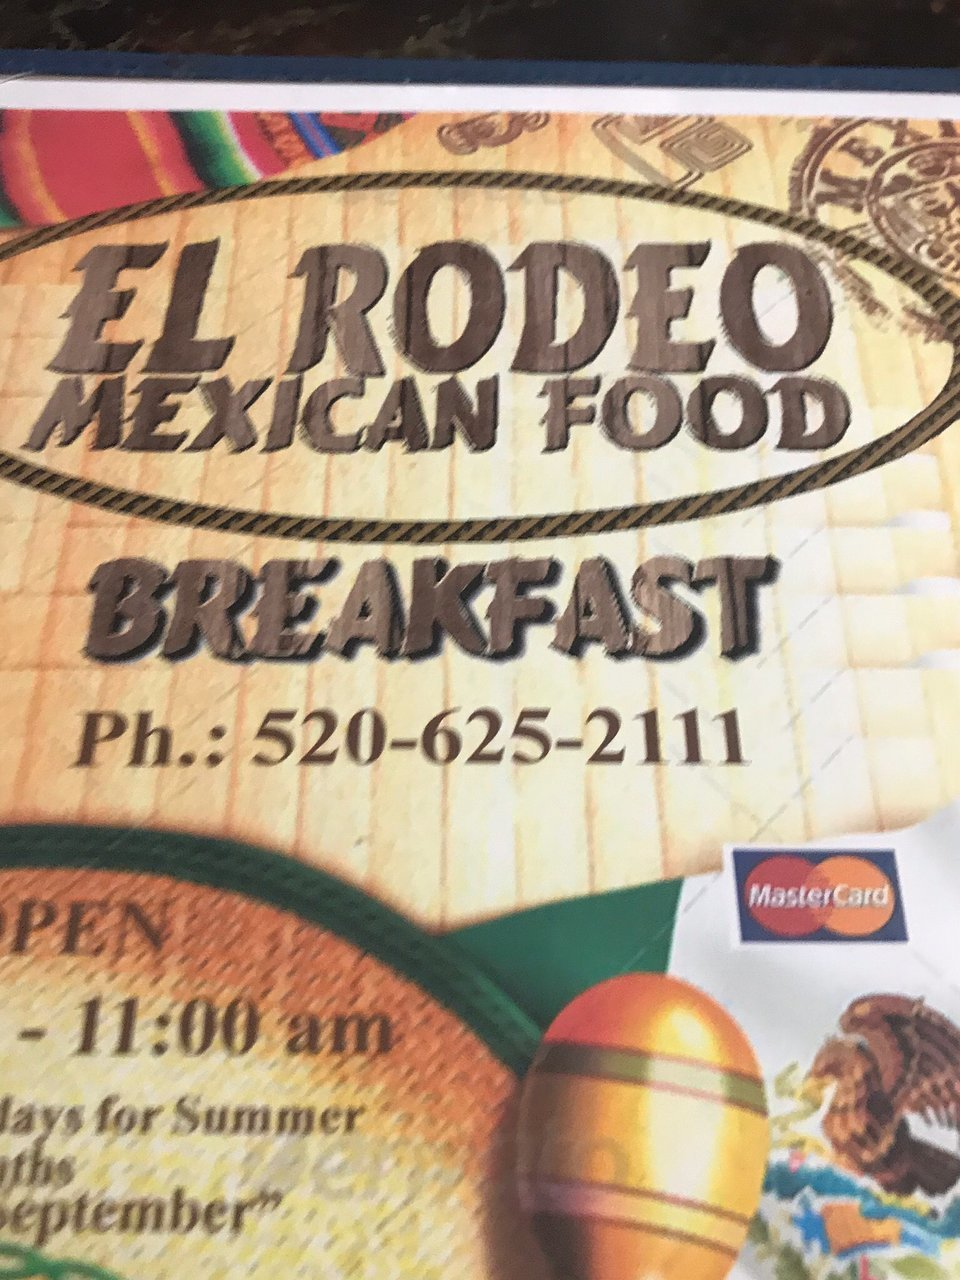 El Rodeo Mexican Food